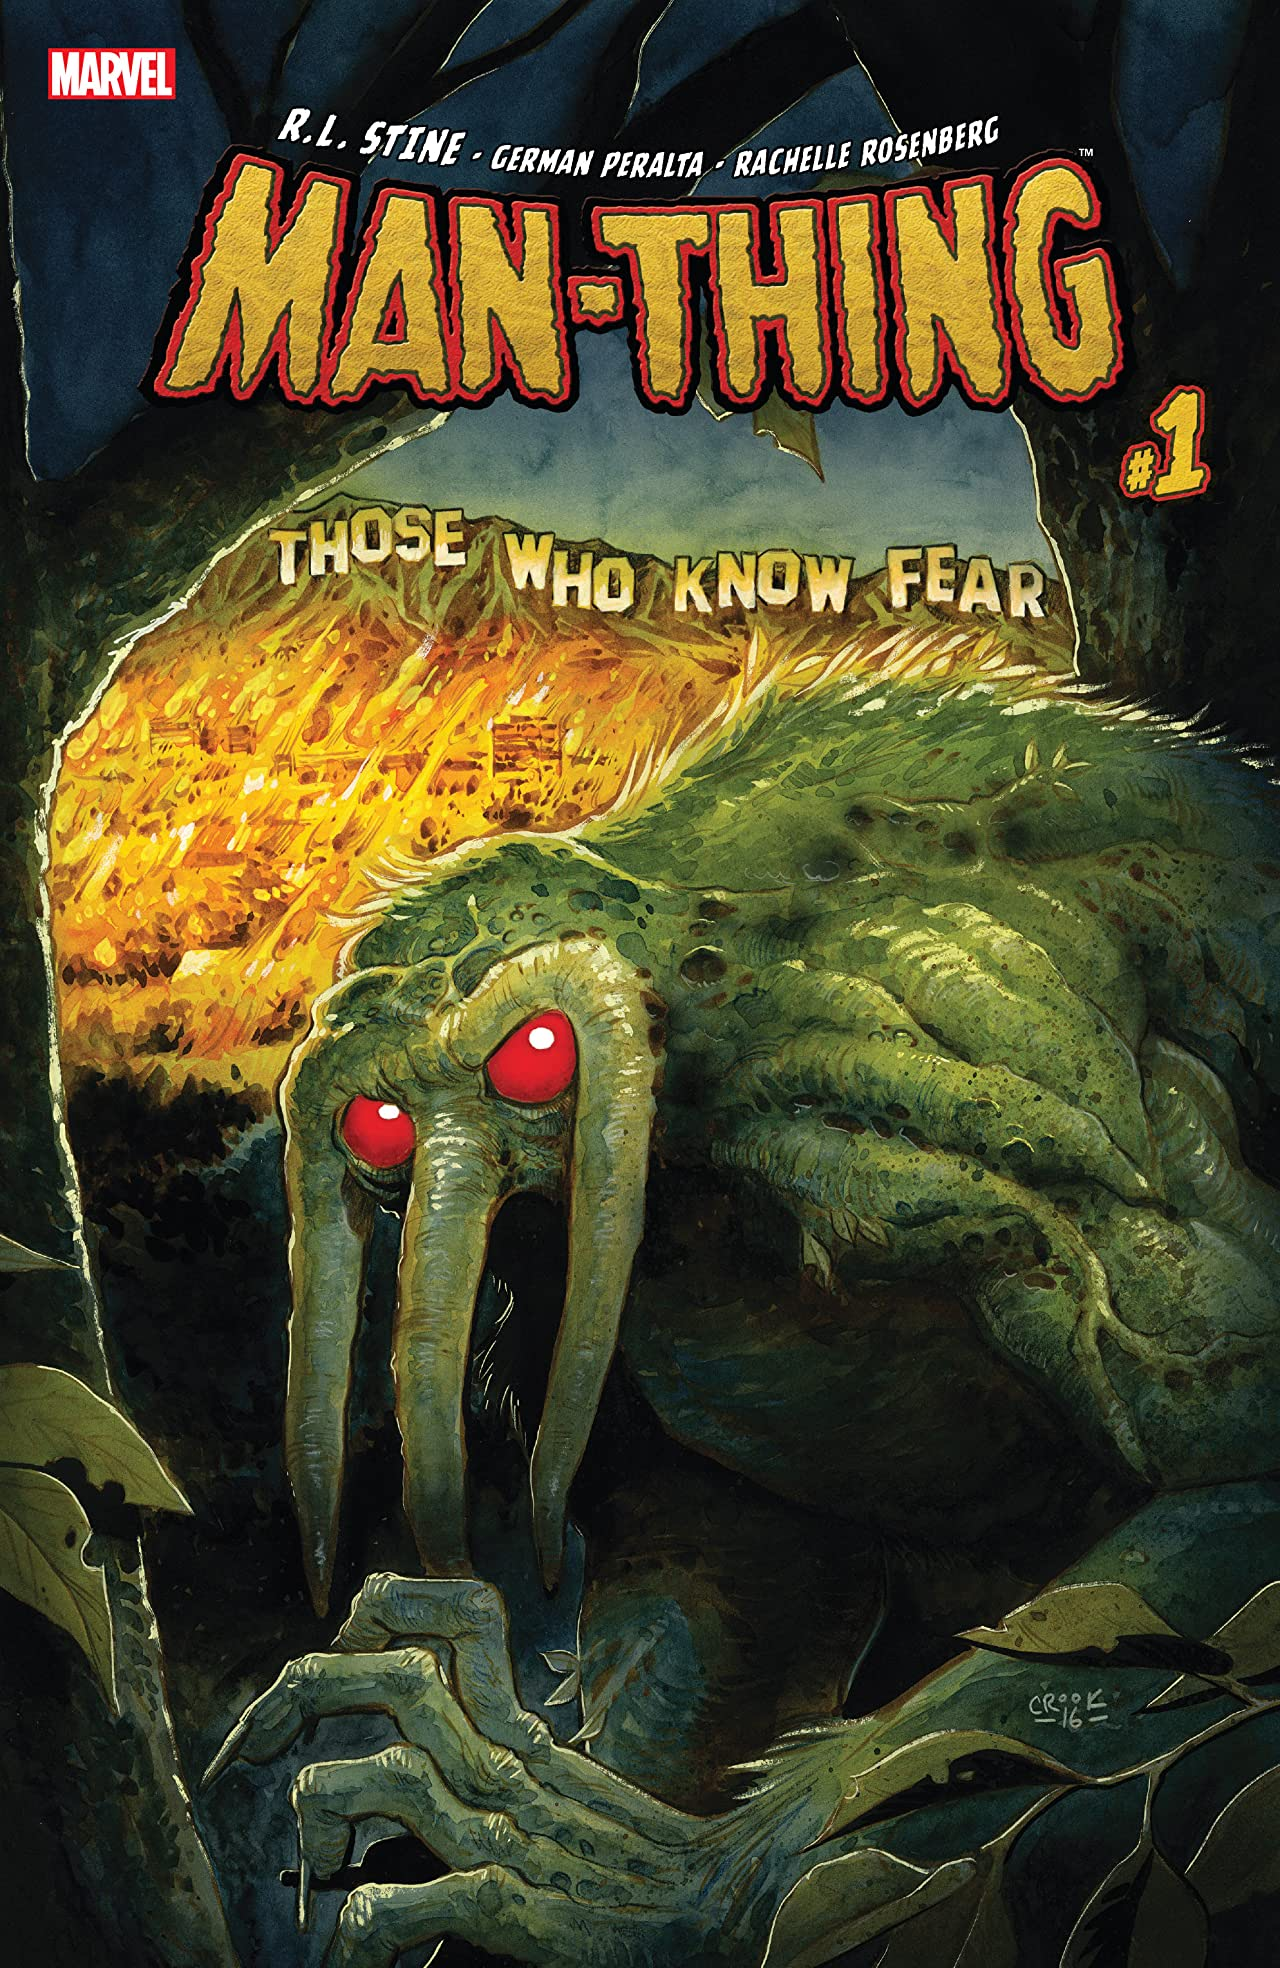 Man-Thing (2017) #1 (of 5)